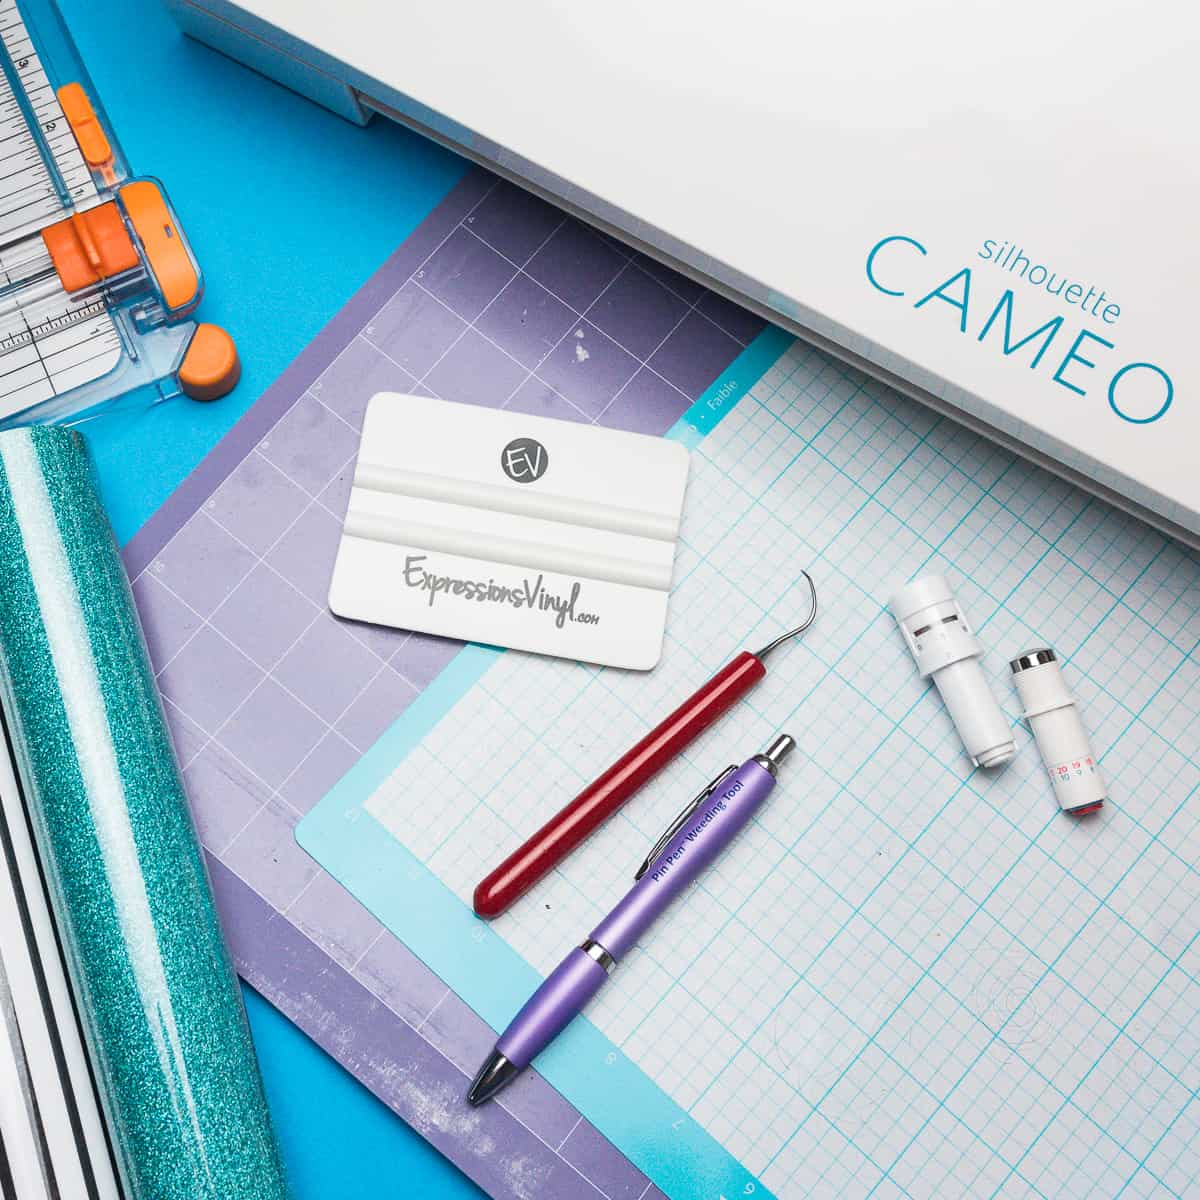 Silhouette Cameo Tools You Need To Craft With